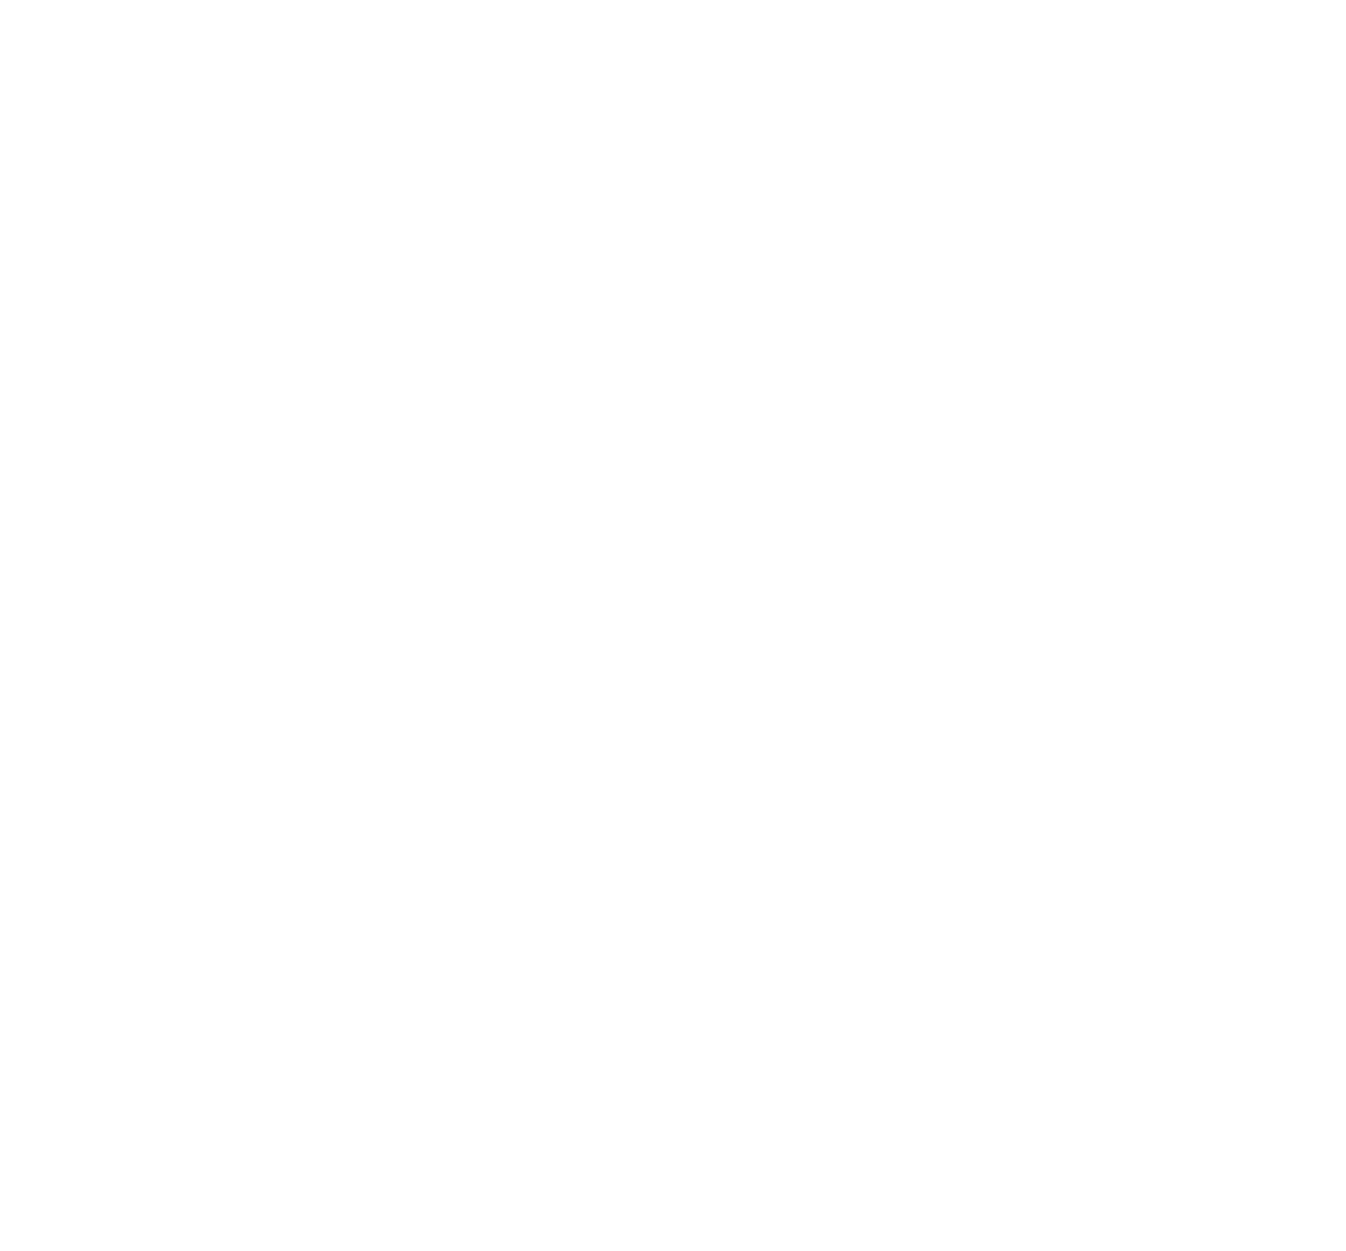 Canada's Most Admired Corporate Cultures 2020